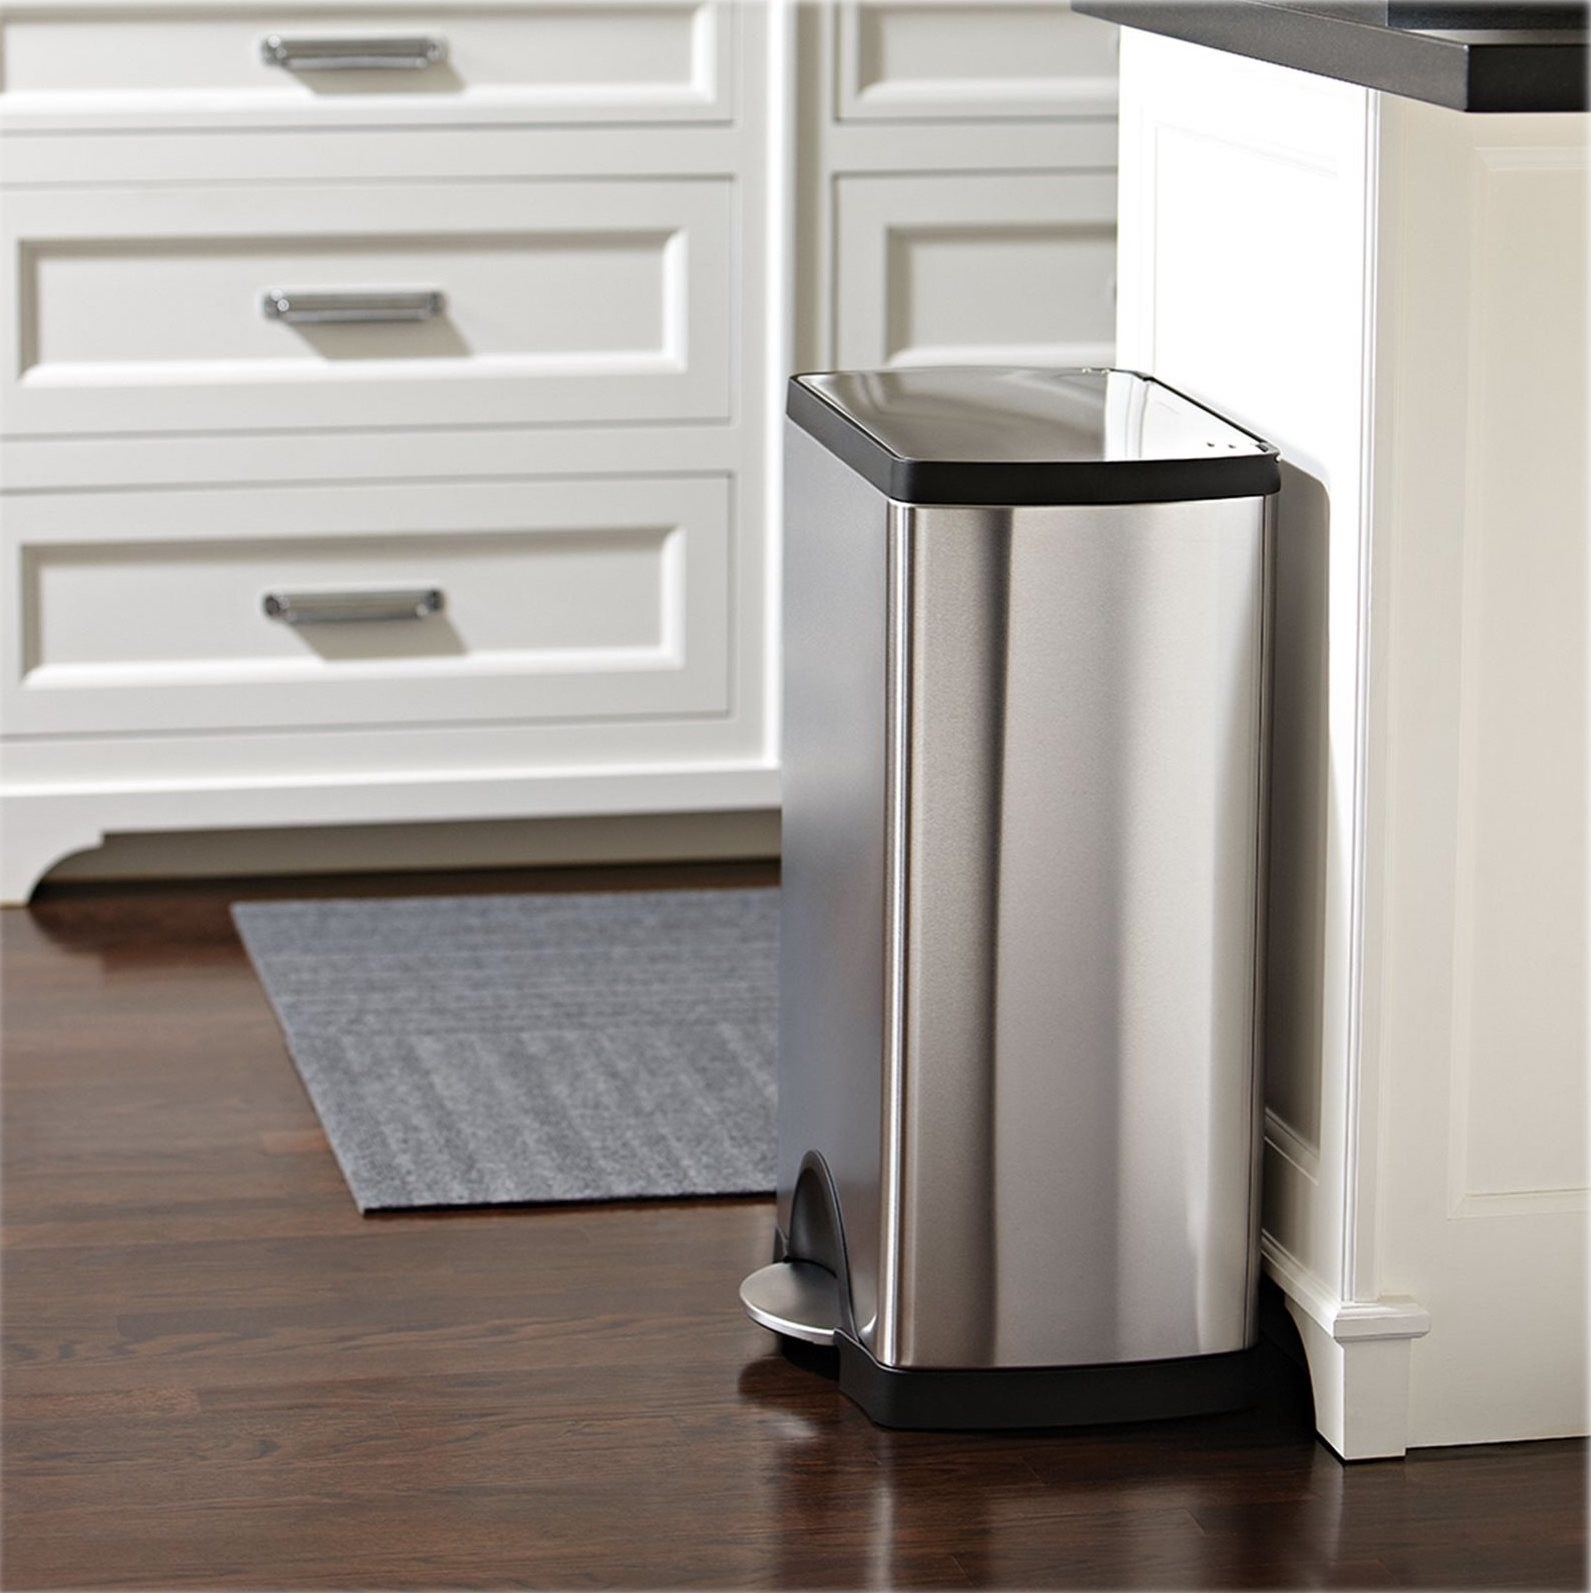 stainless steep step trashcan sitting next to a white kitchen counter